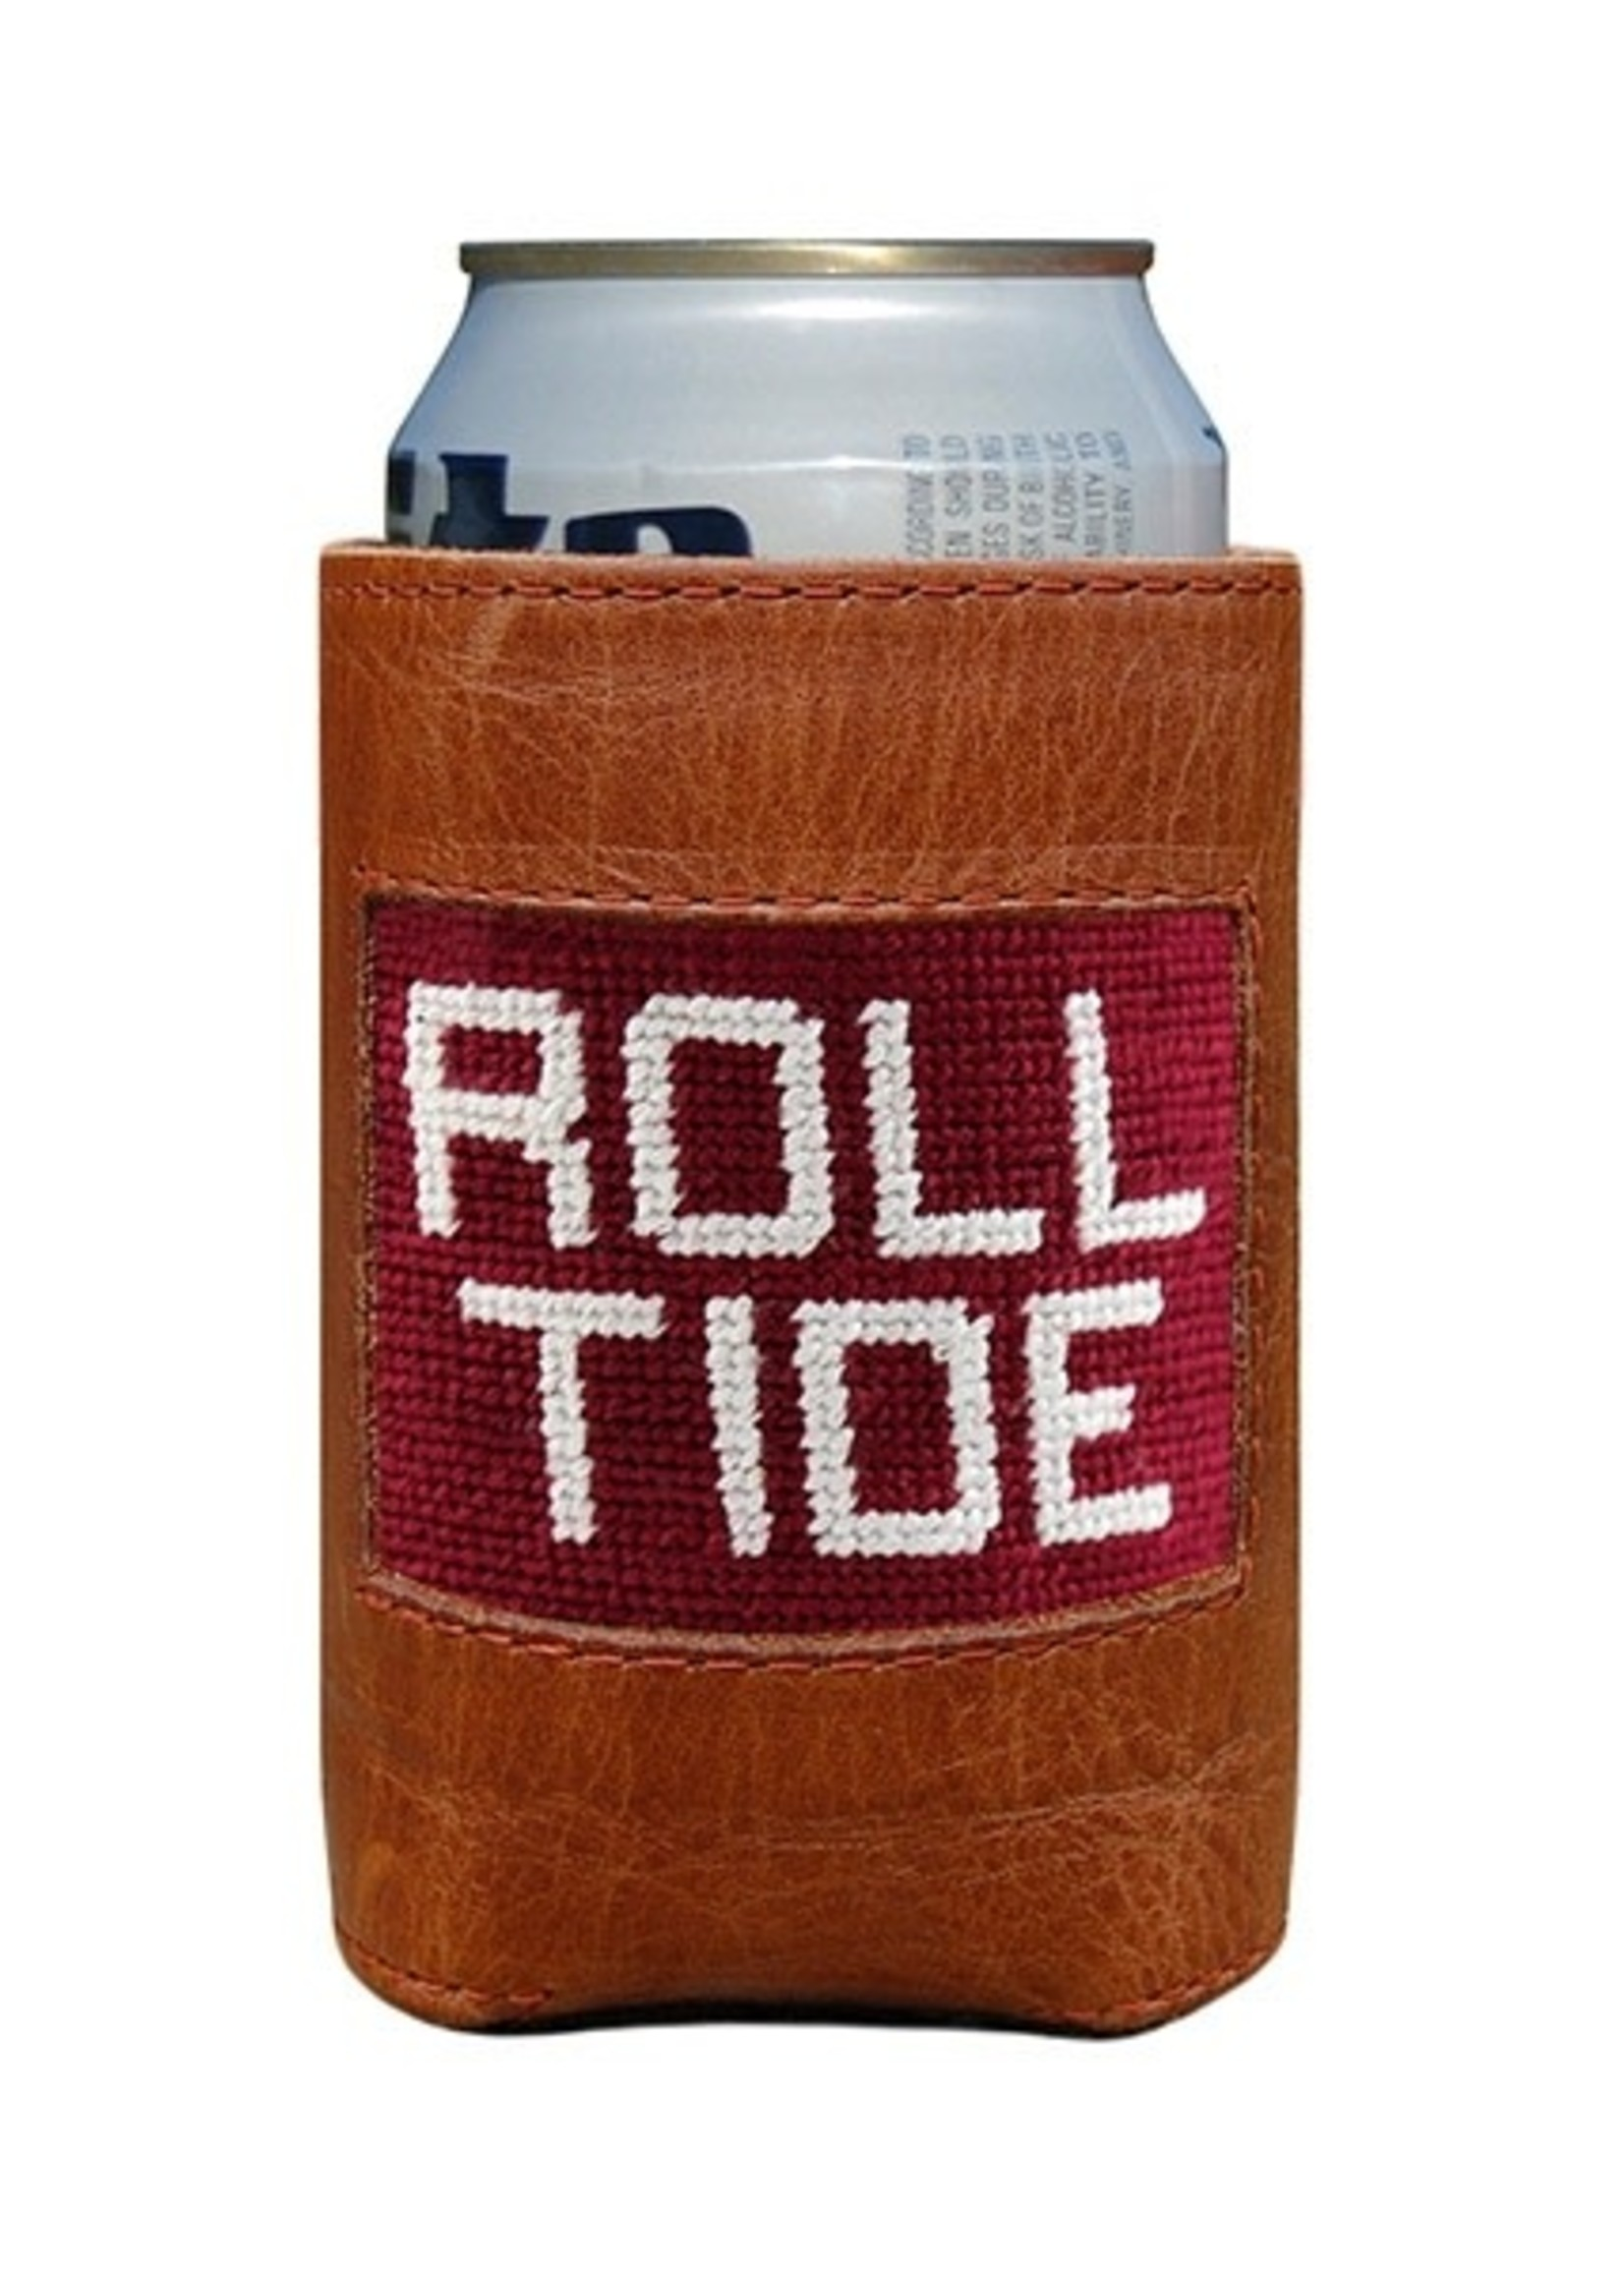 Smathers & Branson Roll Tide Needlepoint Coozie